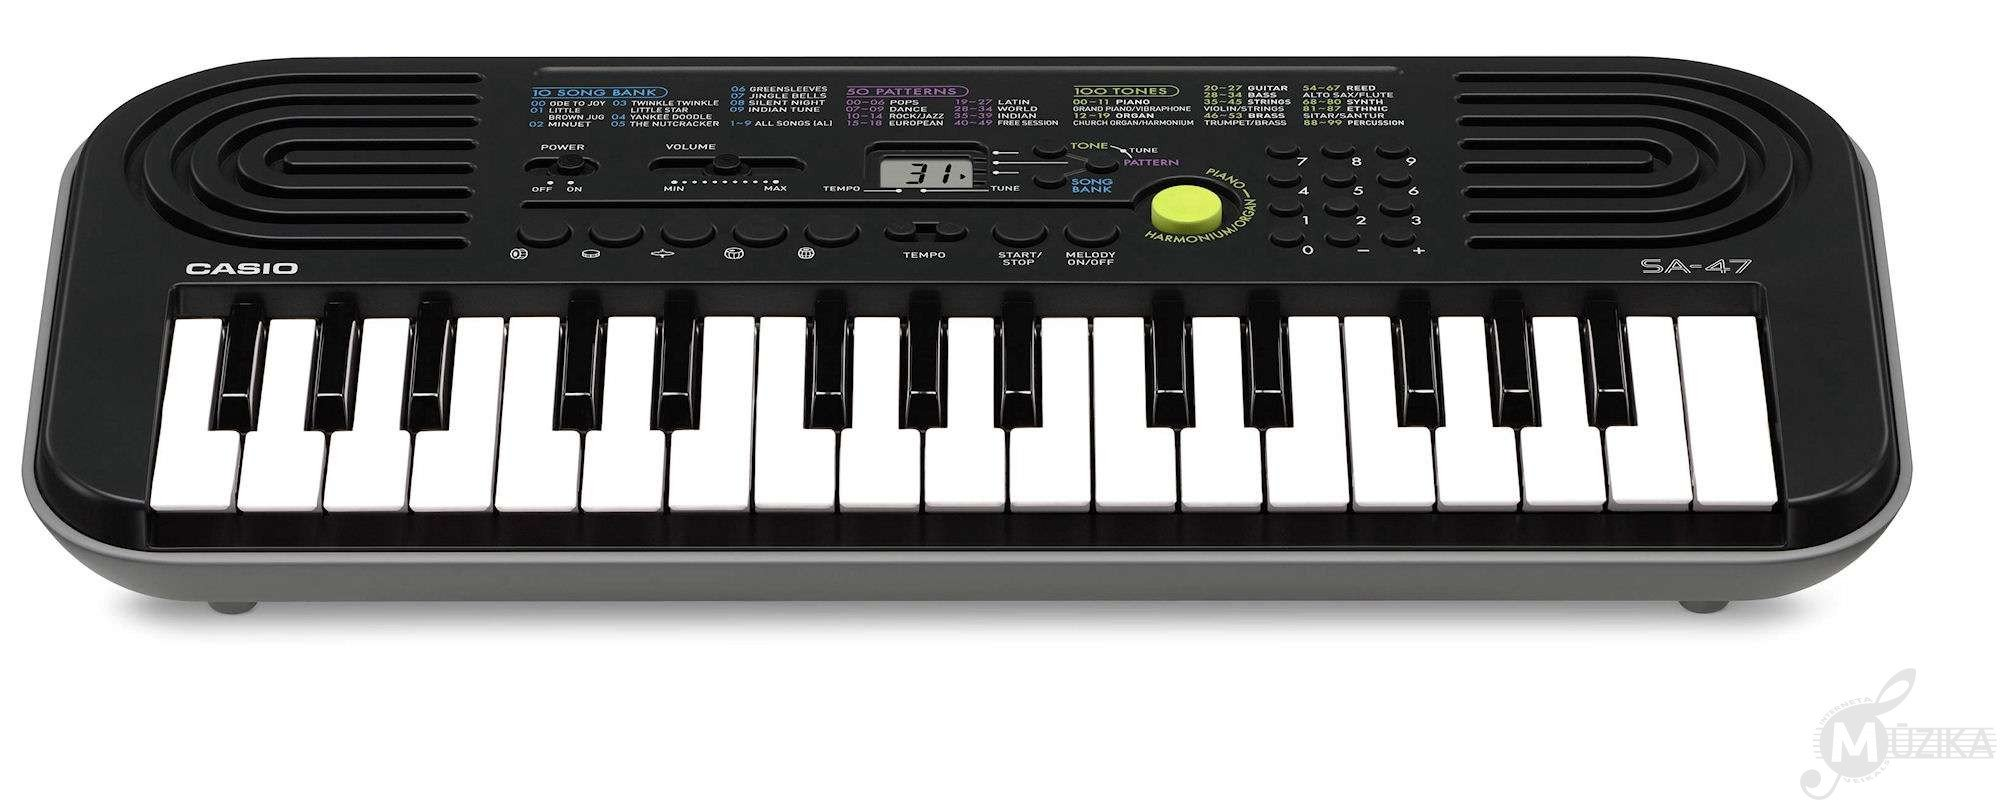 little sa-47 casio keyboard